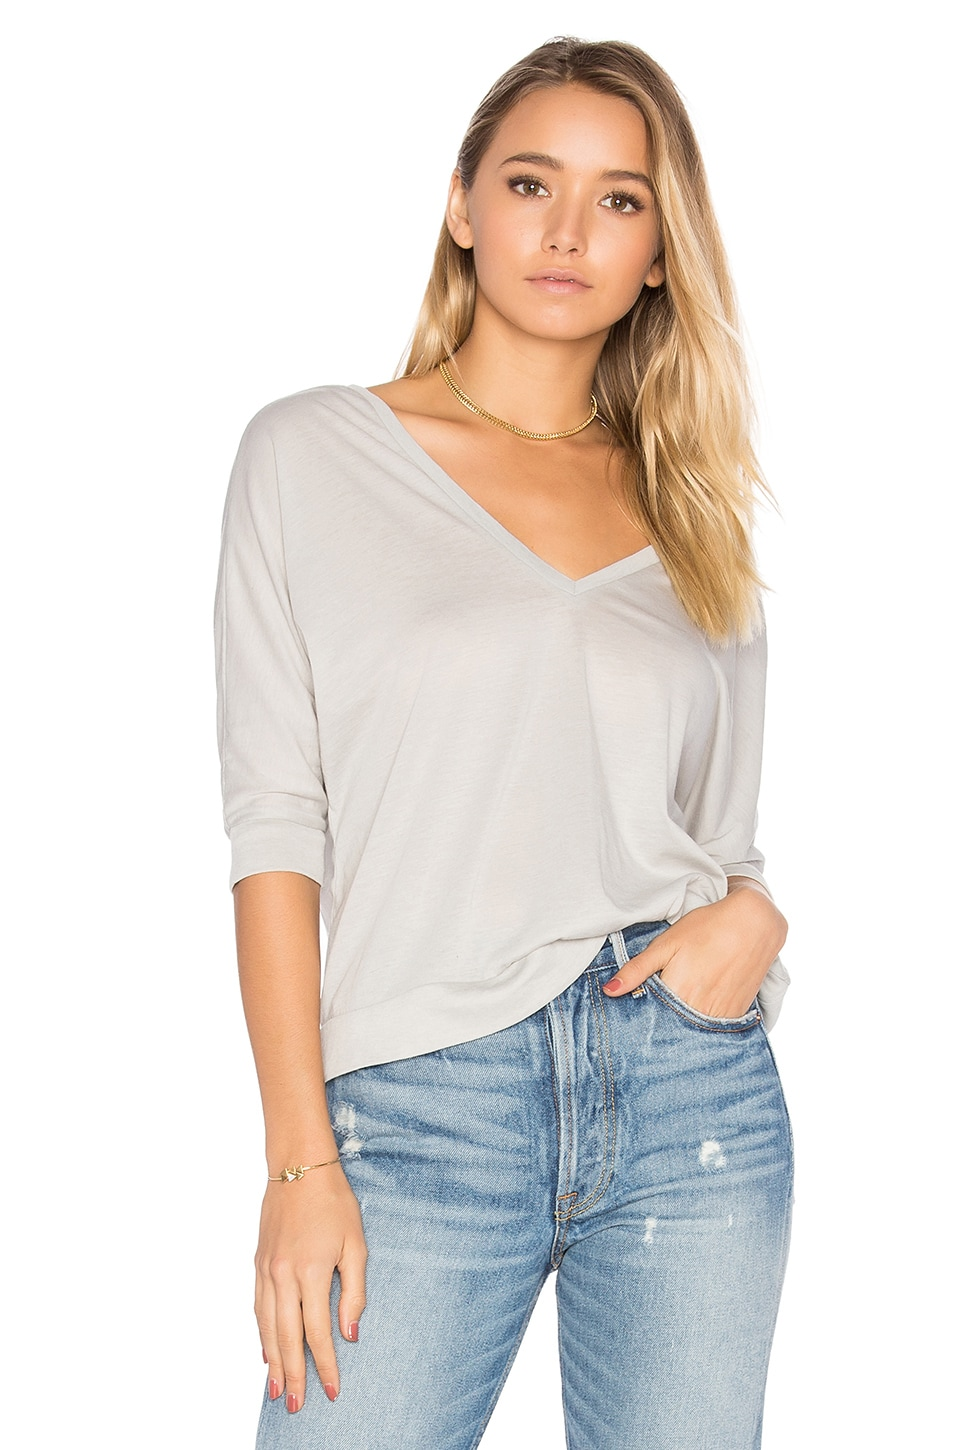 Double V Dolman Tee by Chaser